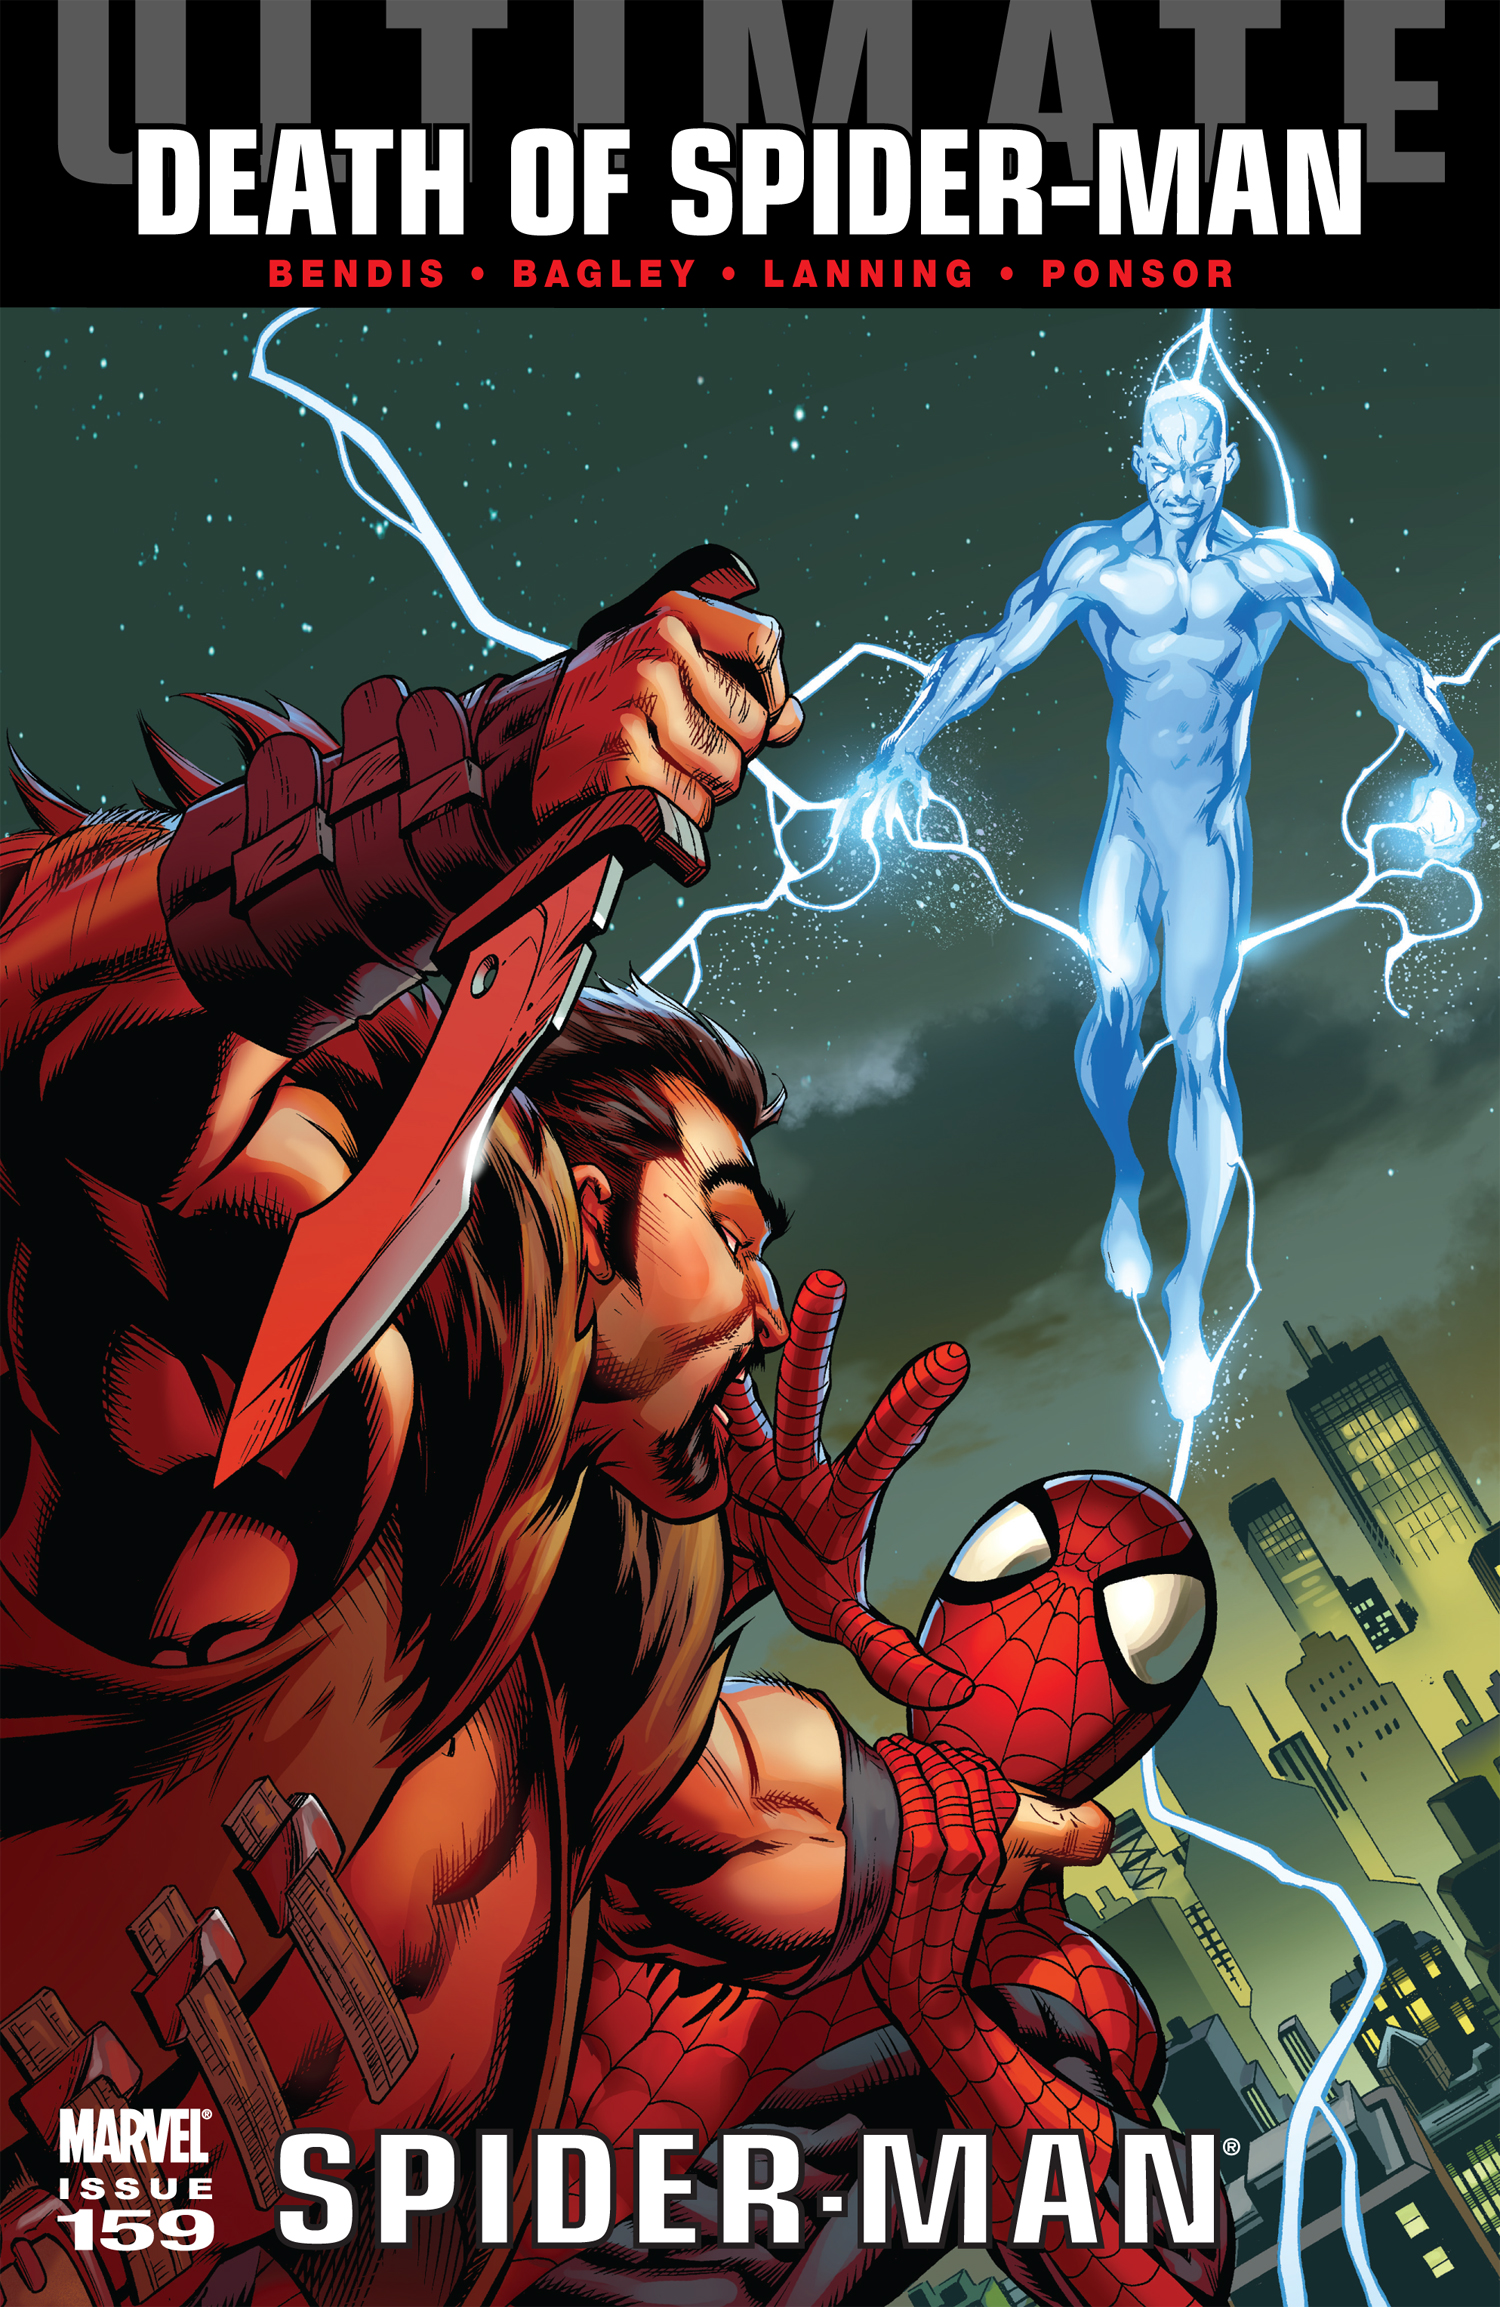 Ultimate Comics Spider-Man (2009) #159